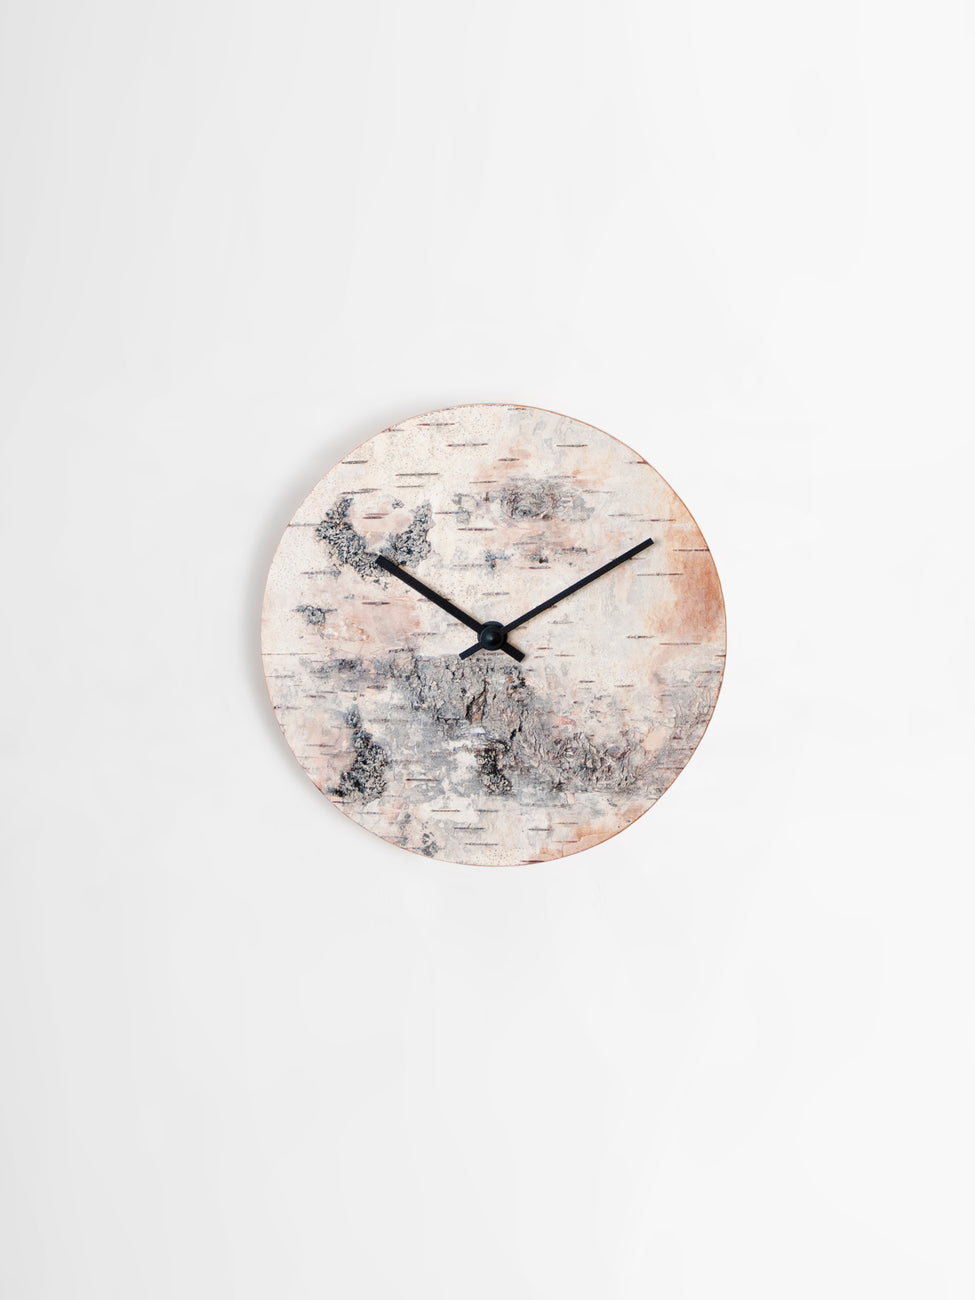 Aika clock, birch bark